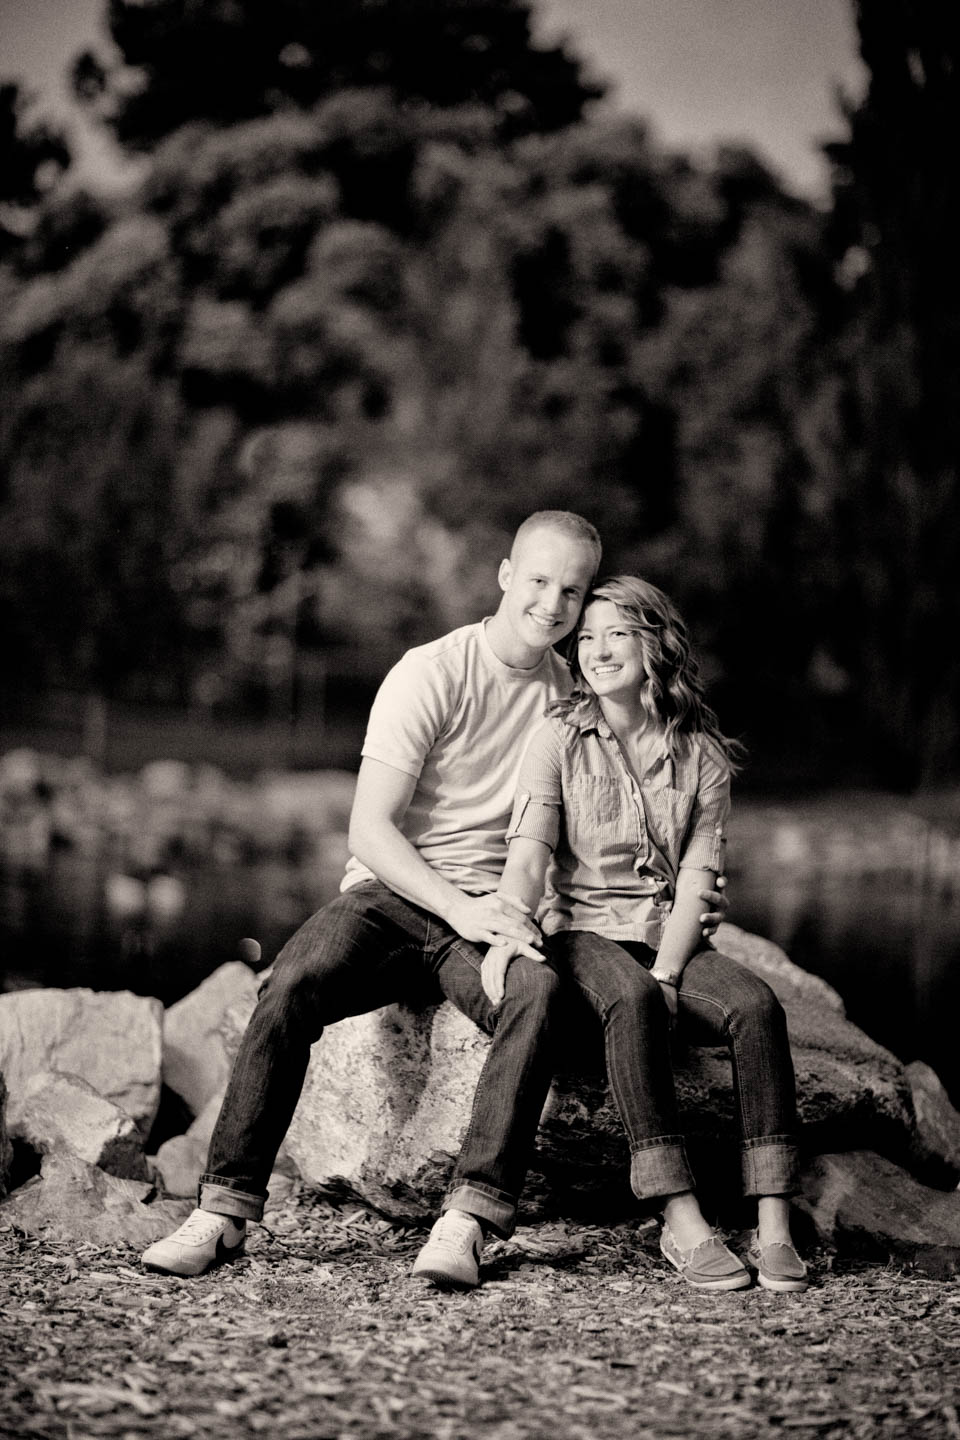 Engagements in an Orem park